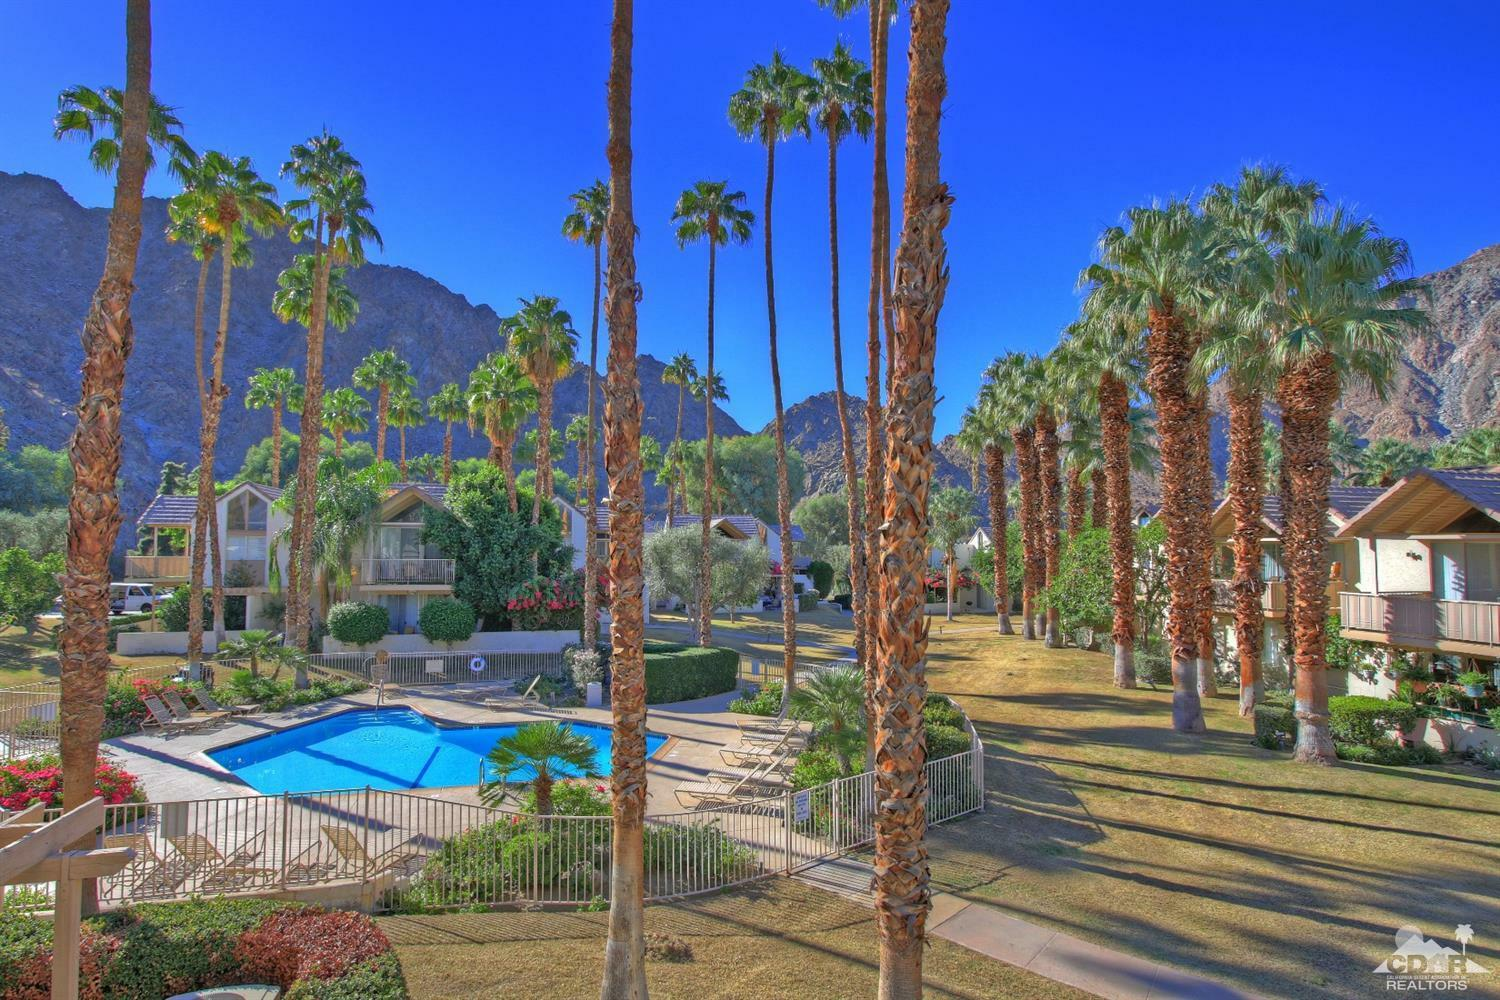 78175 Cabrillo Lane 47, Indian Wells, CA - USA (photo 1)